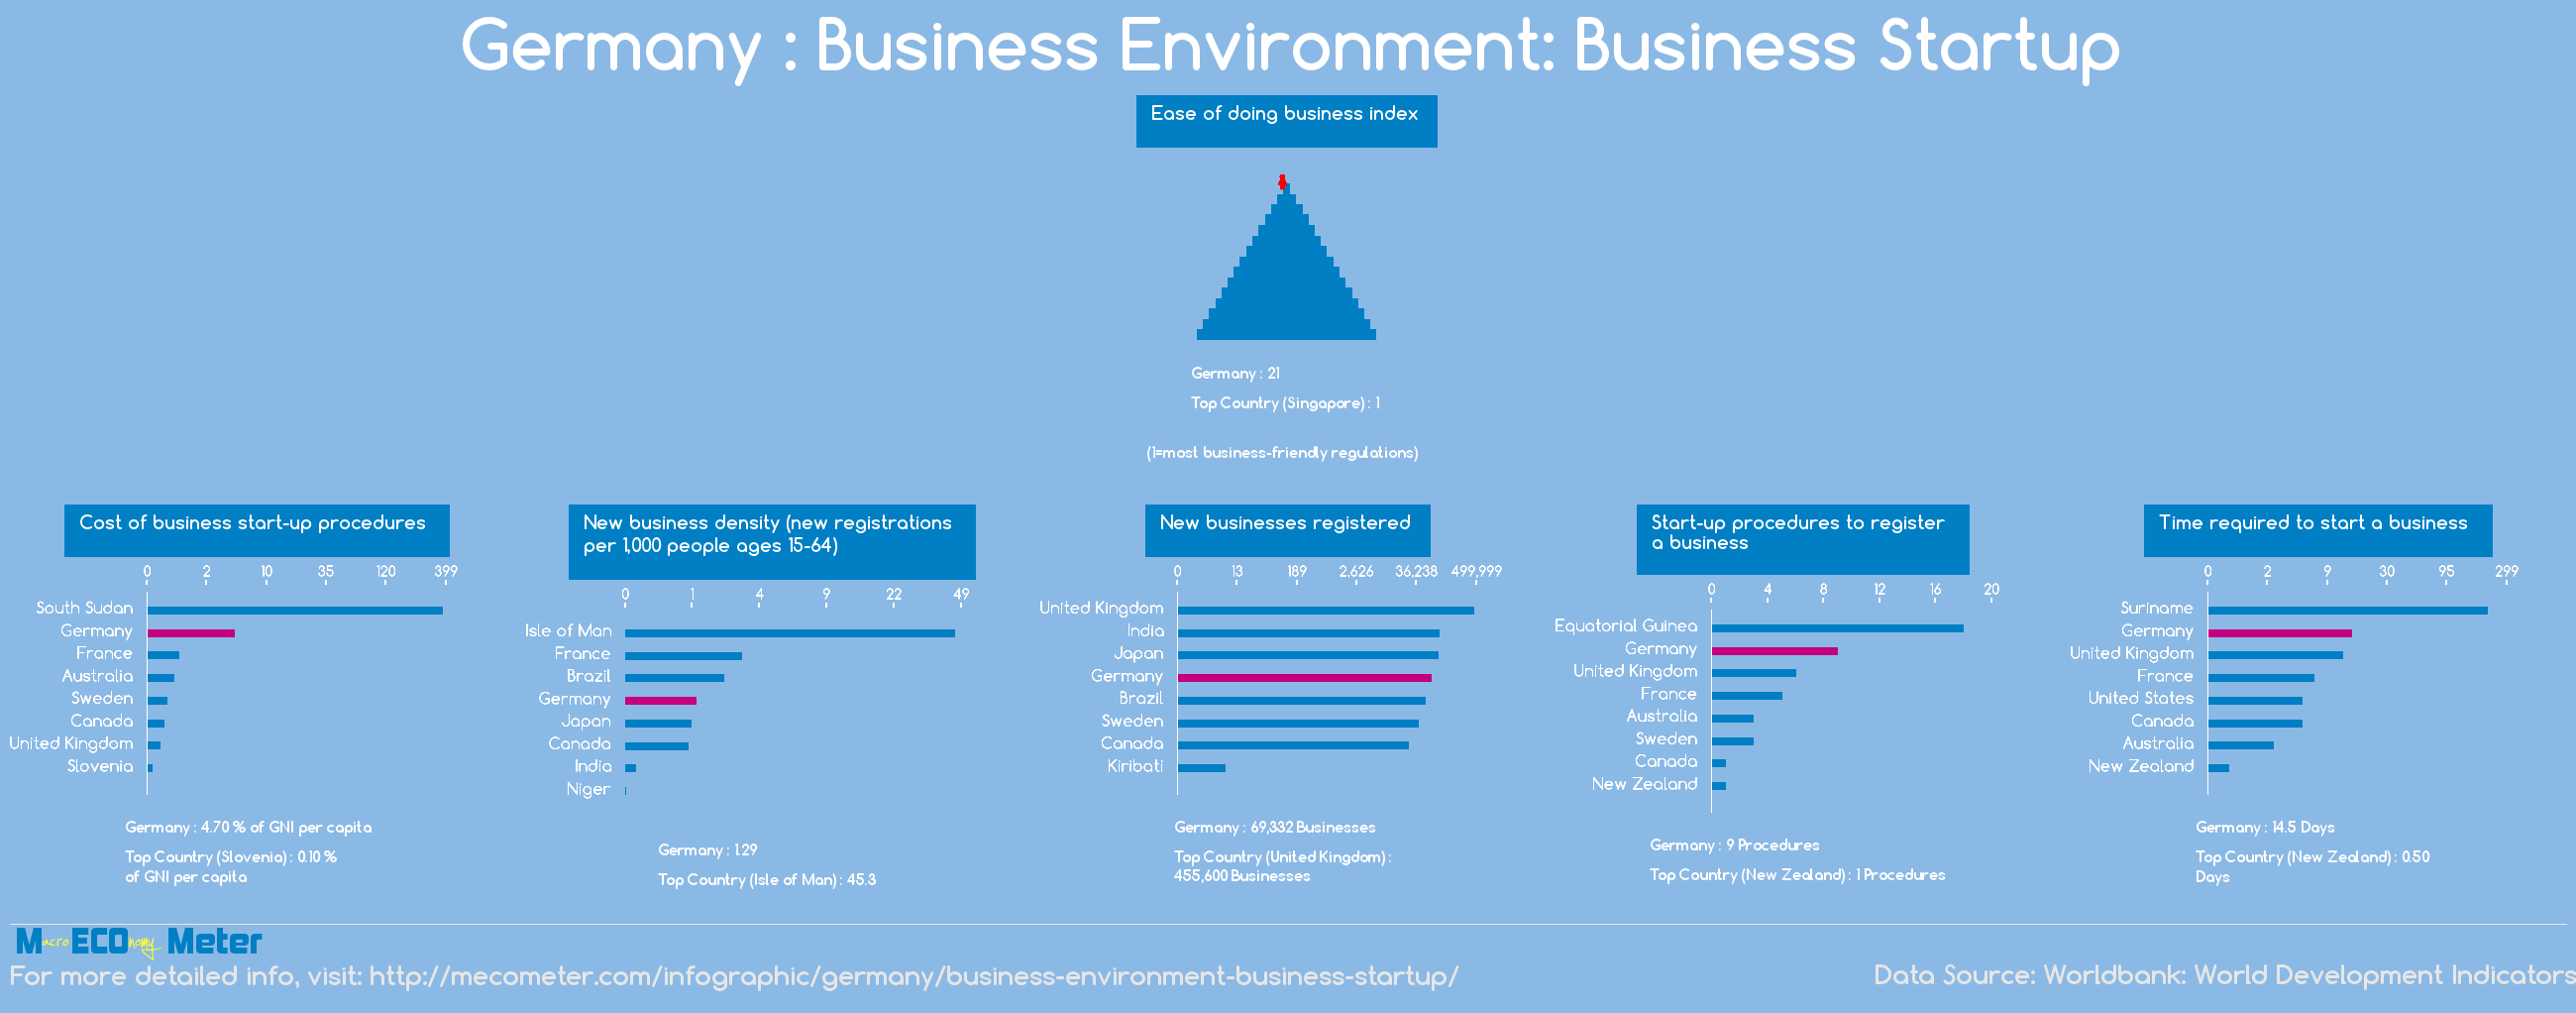 Germany : Business Environment: Business Startup